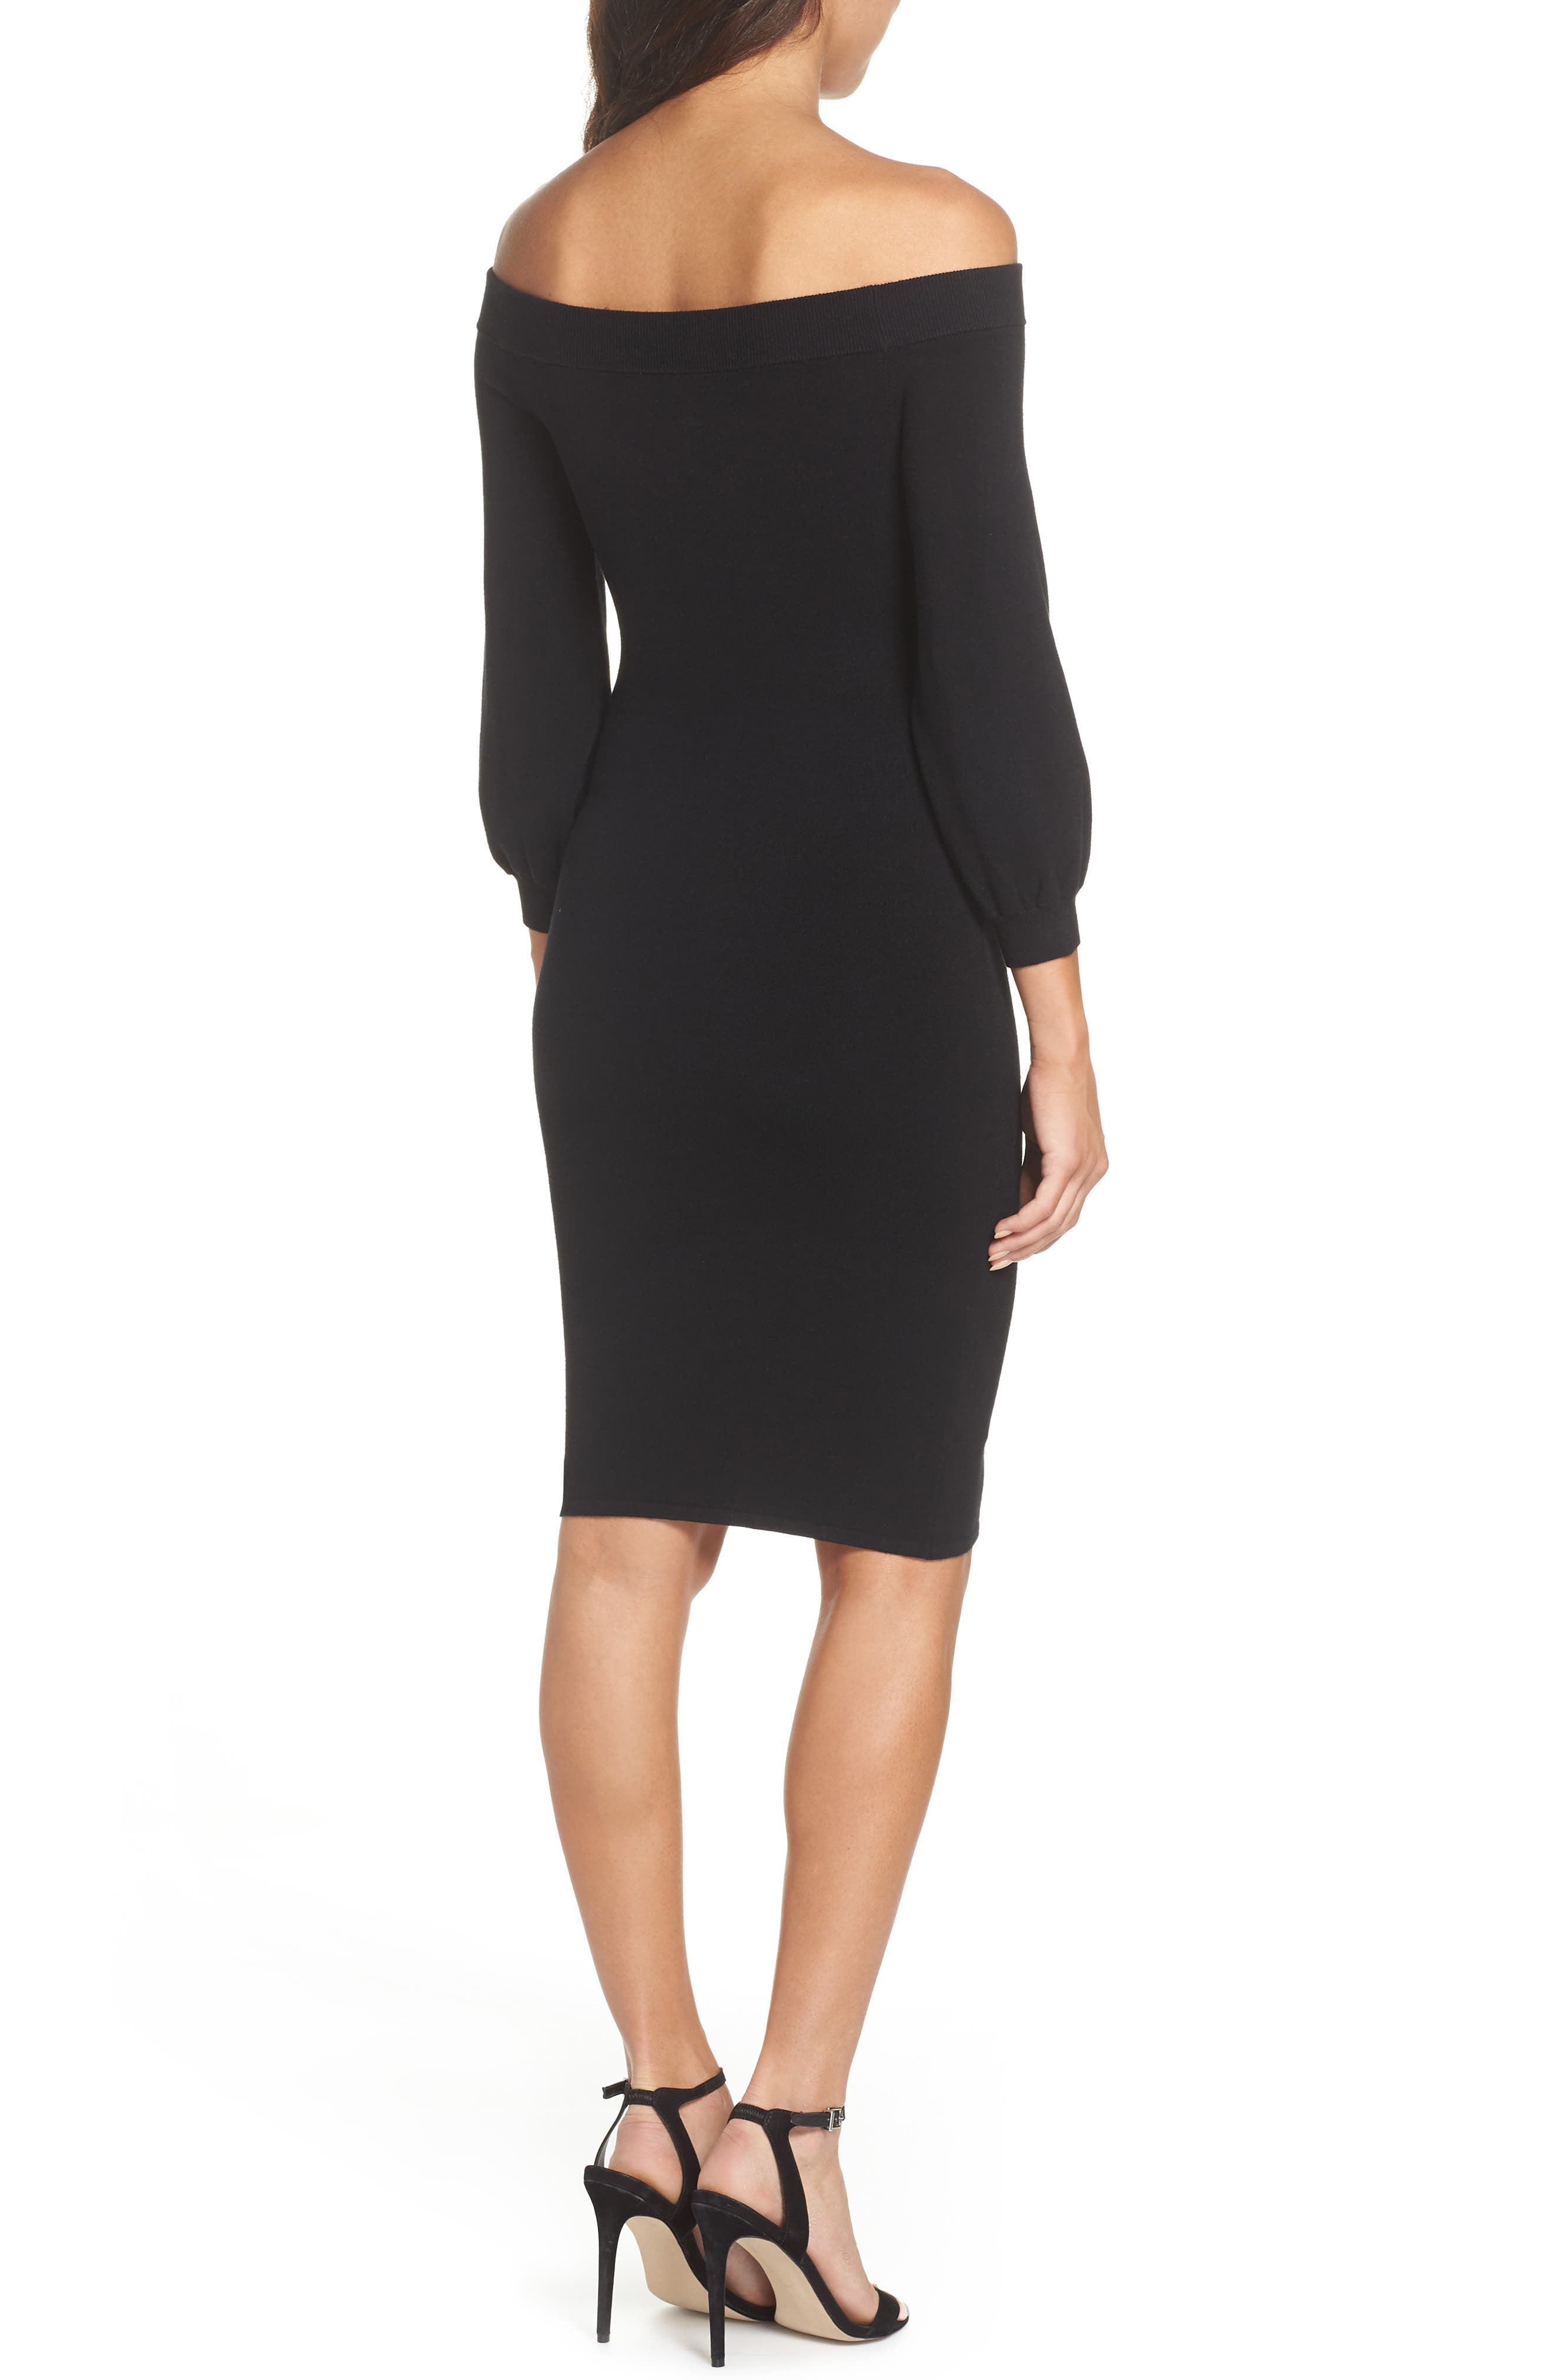 ALI & JAY, Standing Strong Off the Shoulder Midi Sweater Dress, Alternate thumbnail 2, color, 001